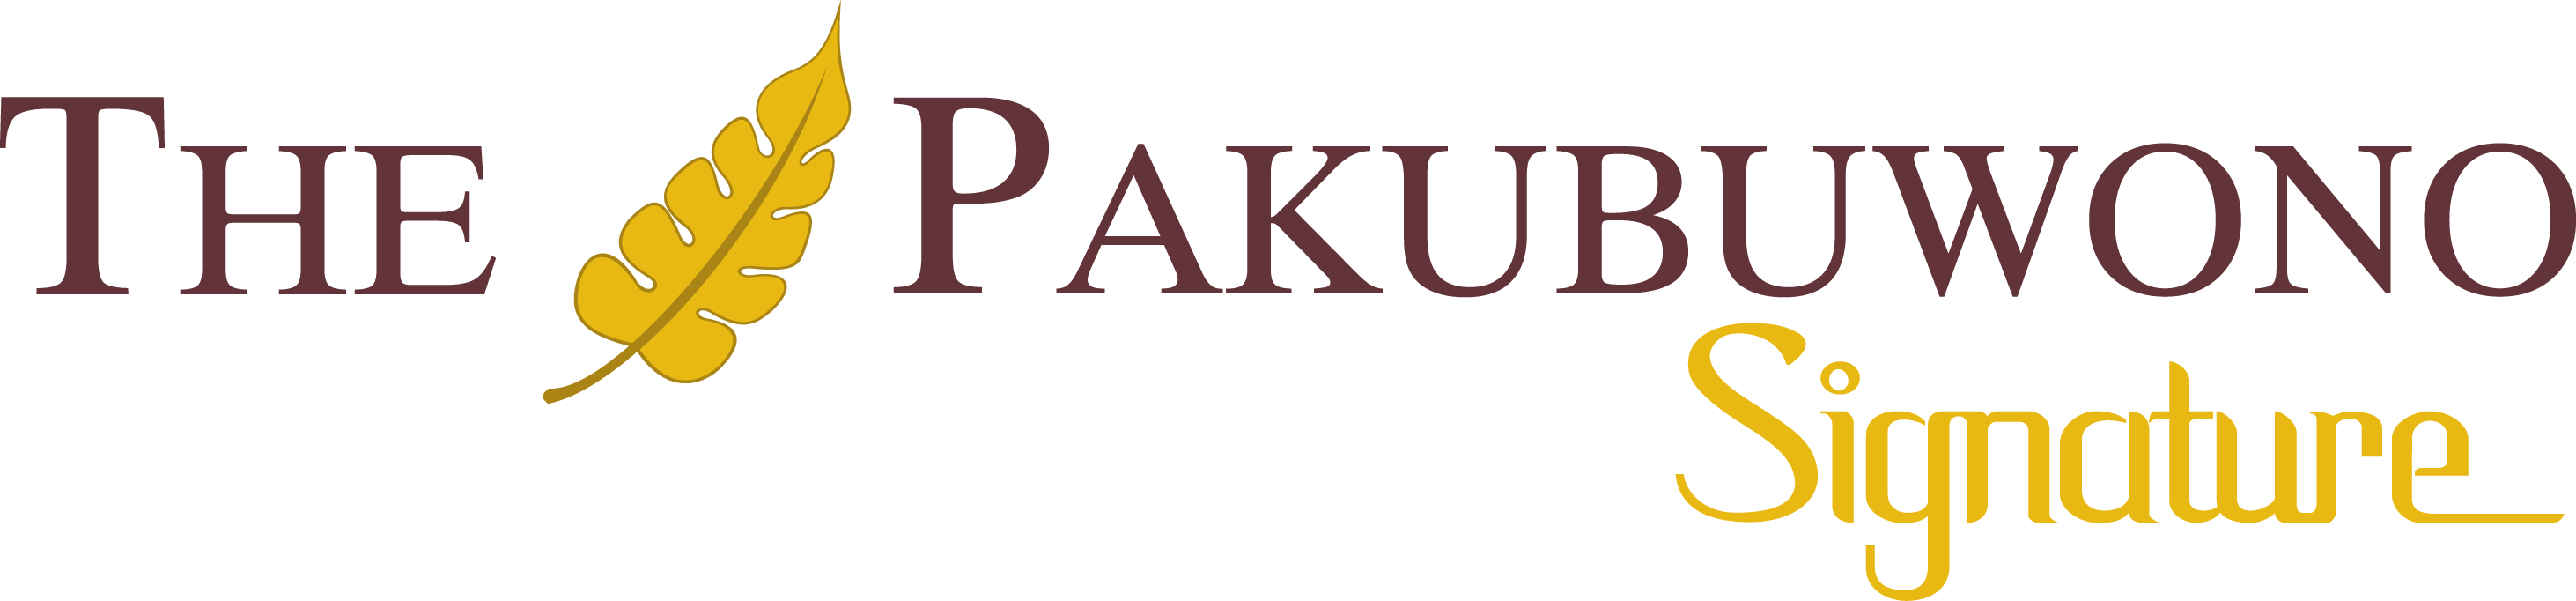 The Pakubuwono Signature